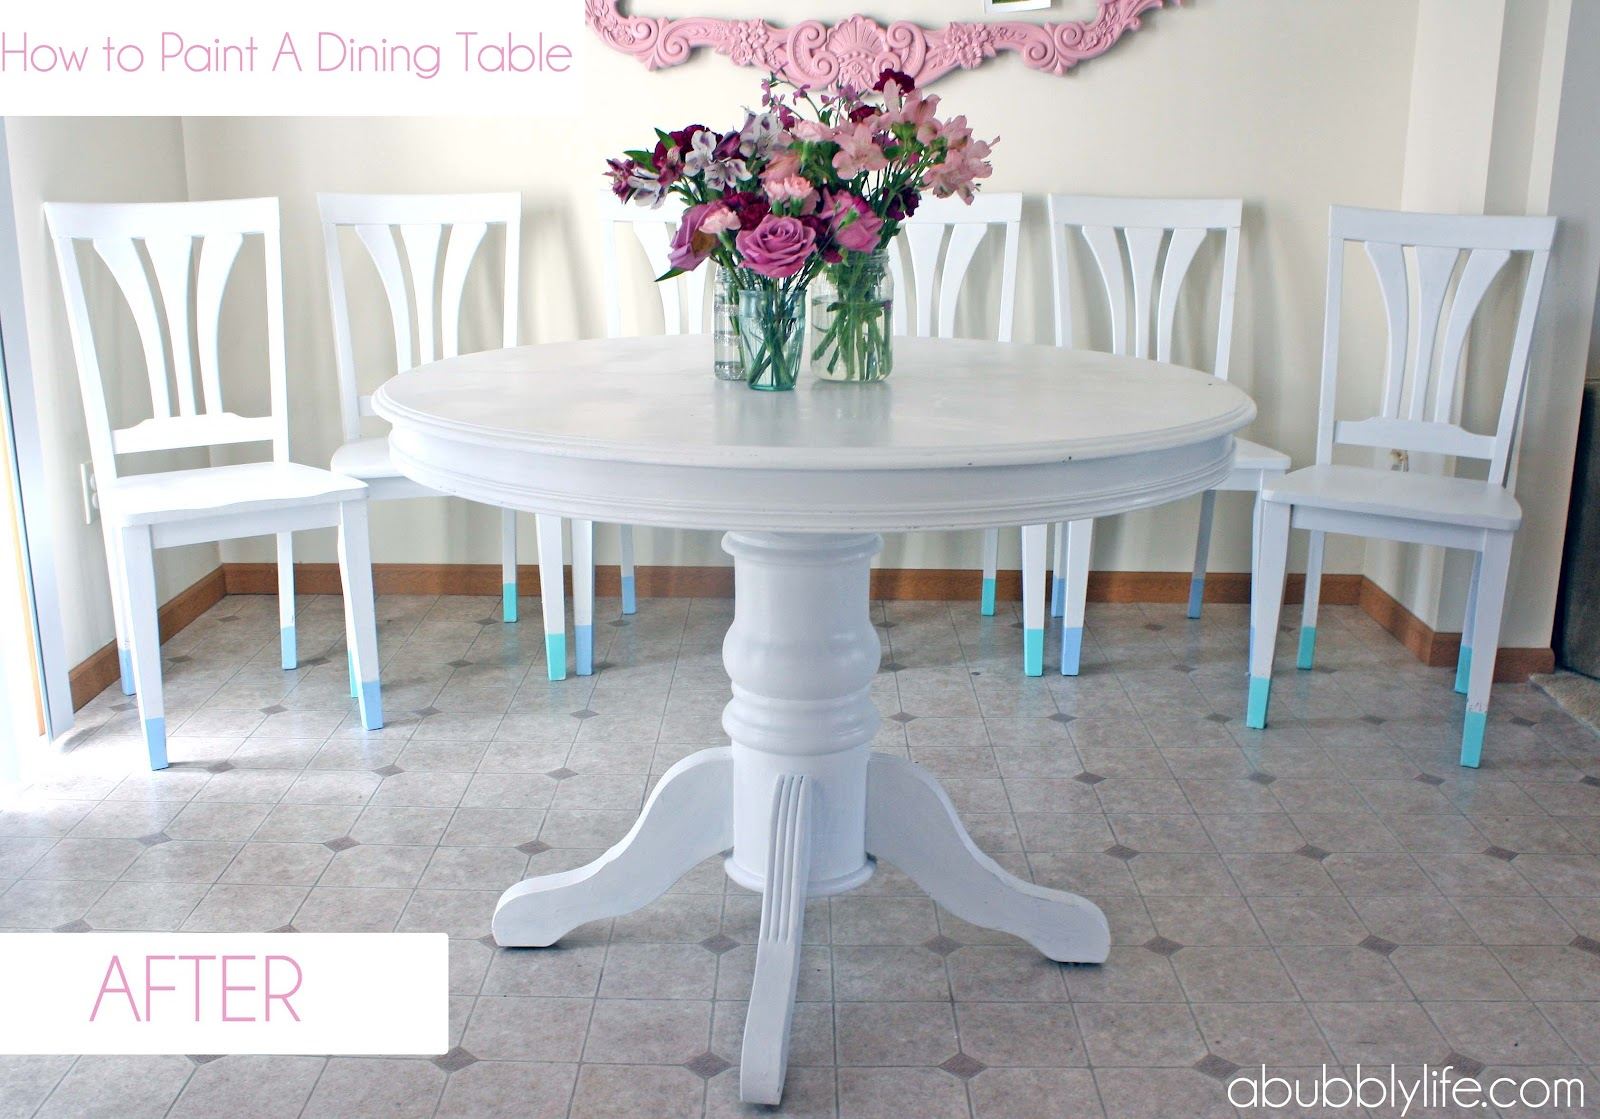 how to paint dining table chairs white kitchen chairs How to Paint a Dining Room Table Chairs Makeover Reveal